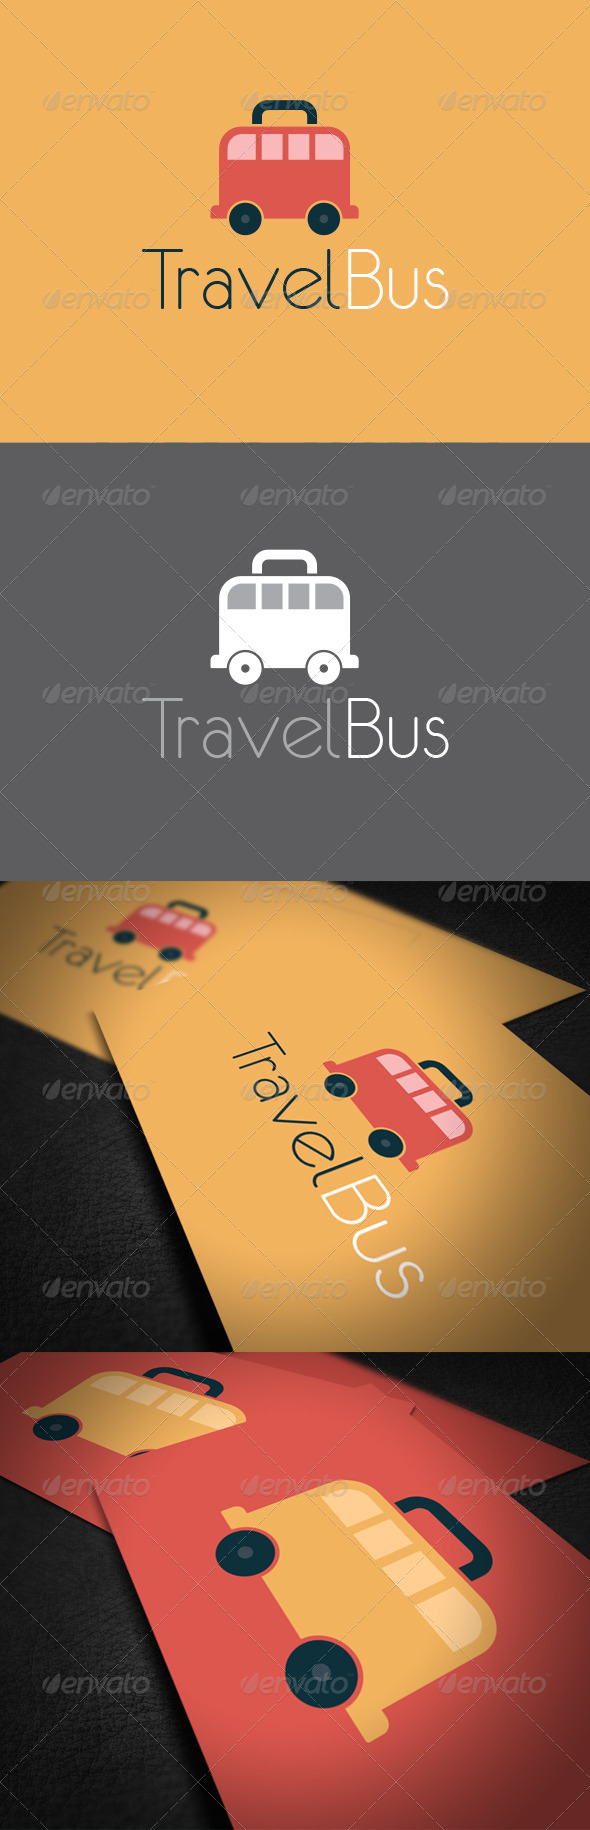 GraphicRiver Travel Bus Logo Template 6325829